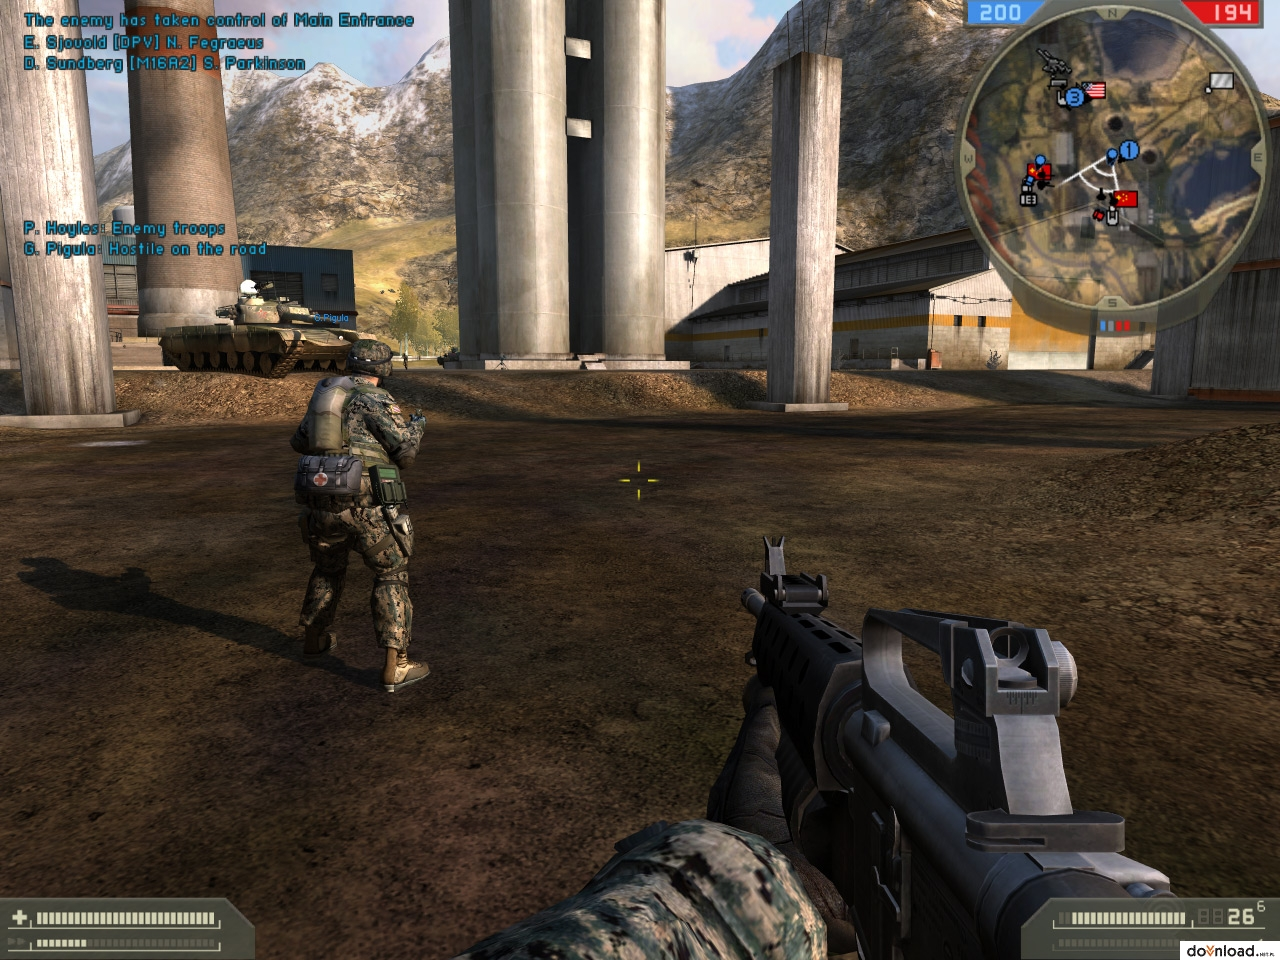 Battlefield 2 Free Download  For Pc with crack